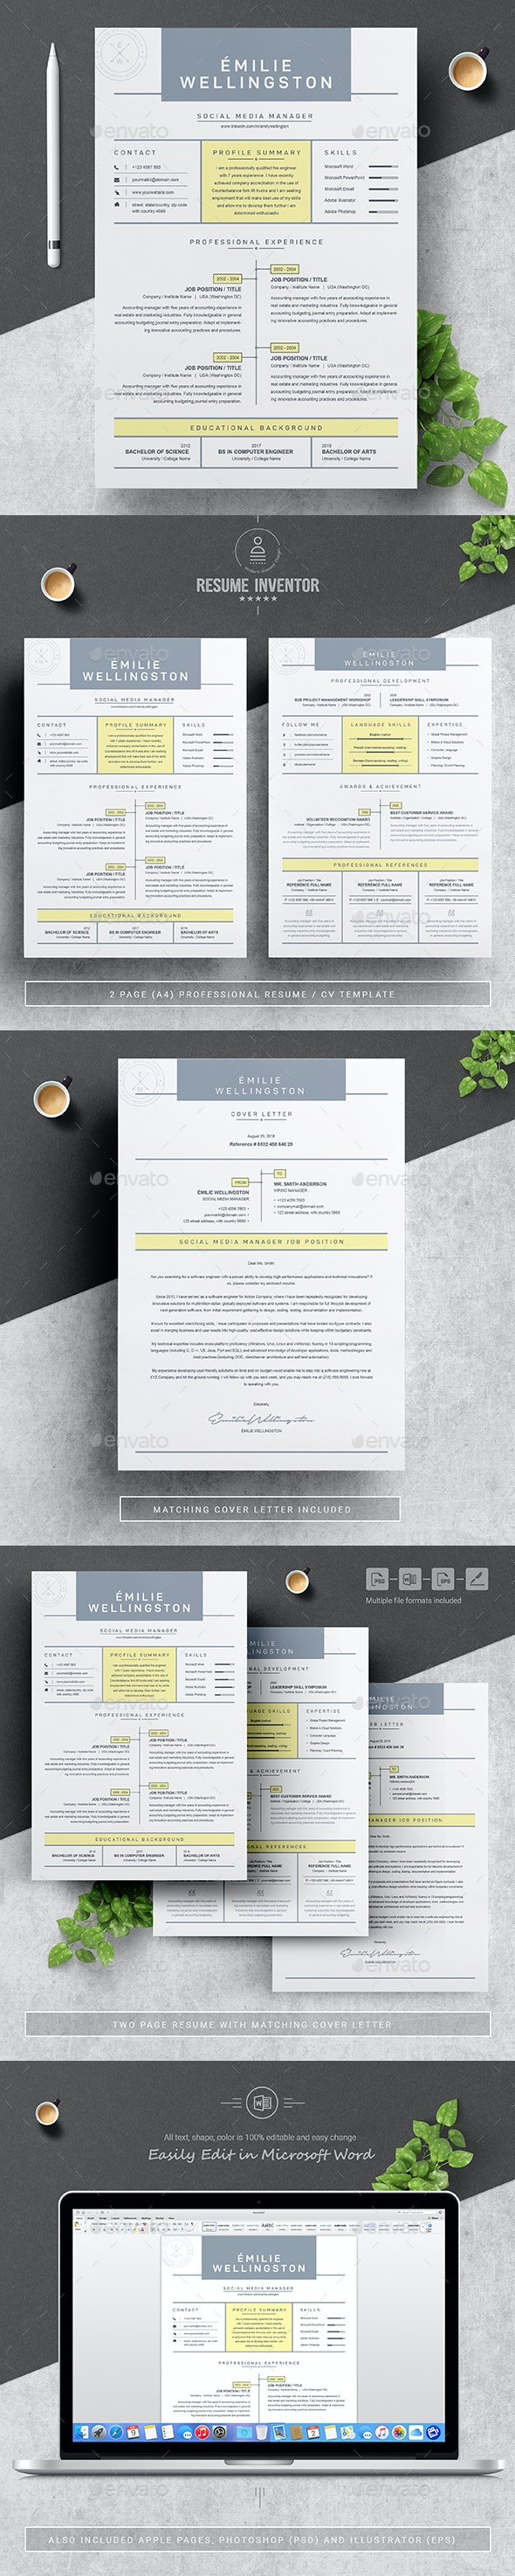 Creative Professional Resume / CV Template - Resumes Stationery